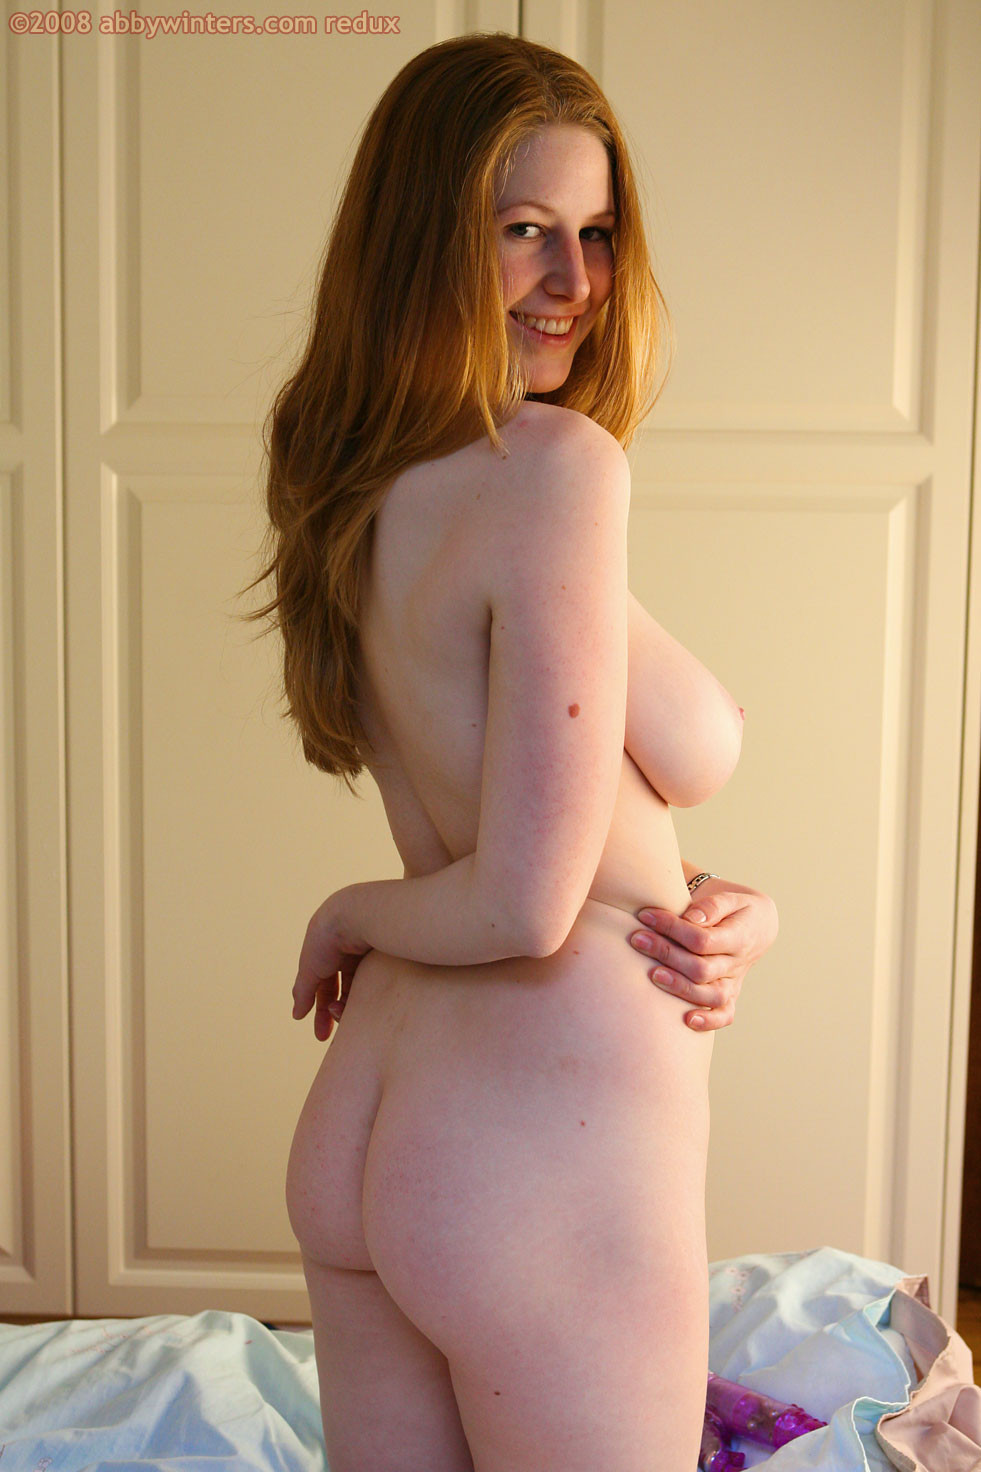 Thick Curvy Redheads Nude